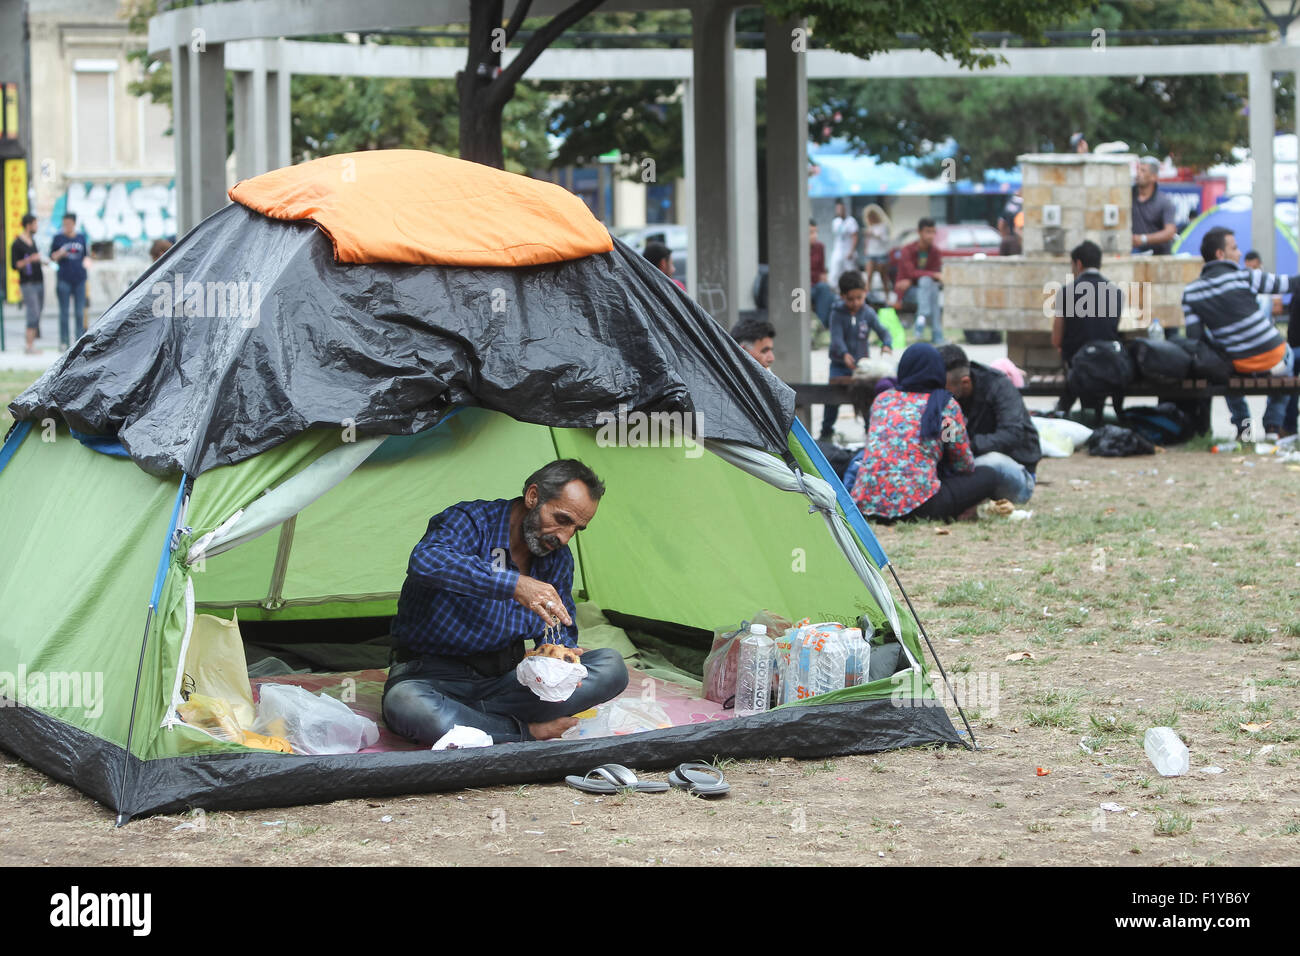 A syrian refugee resting in a tent and eating while waiting for the transport to the European Union in Belgrade Serbia & A syrian refugee resting in a tent and eating while waiting for ...